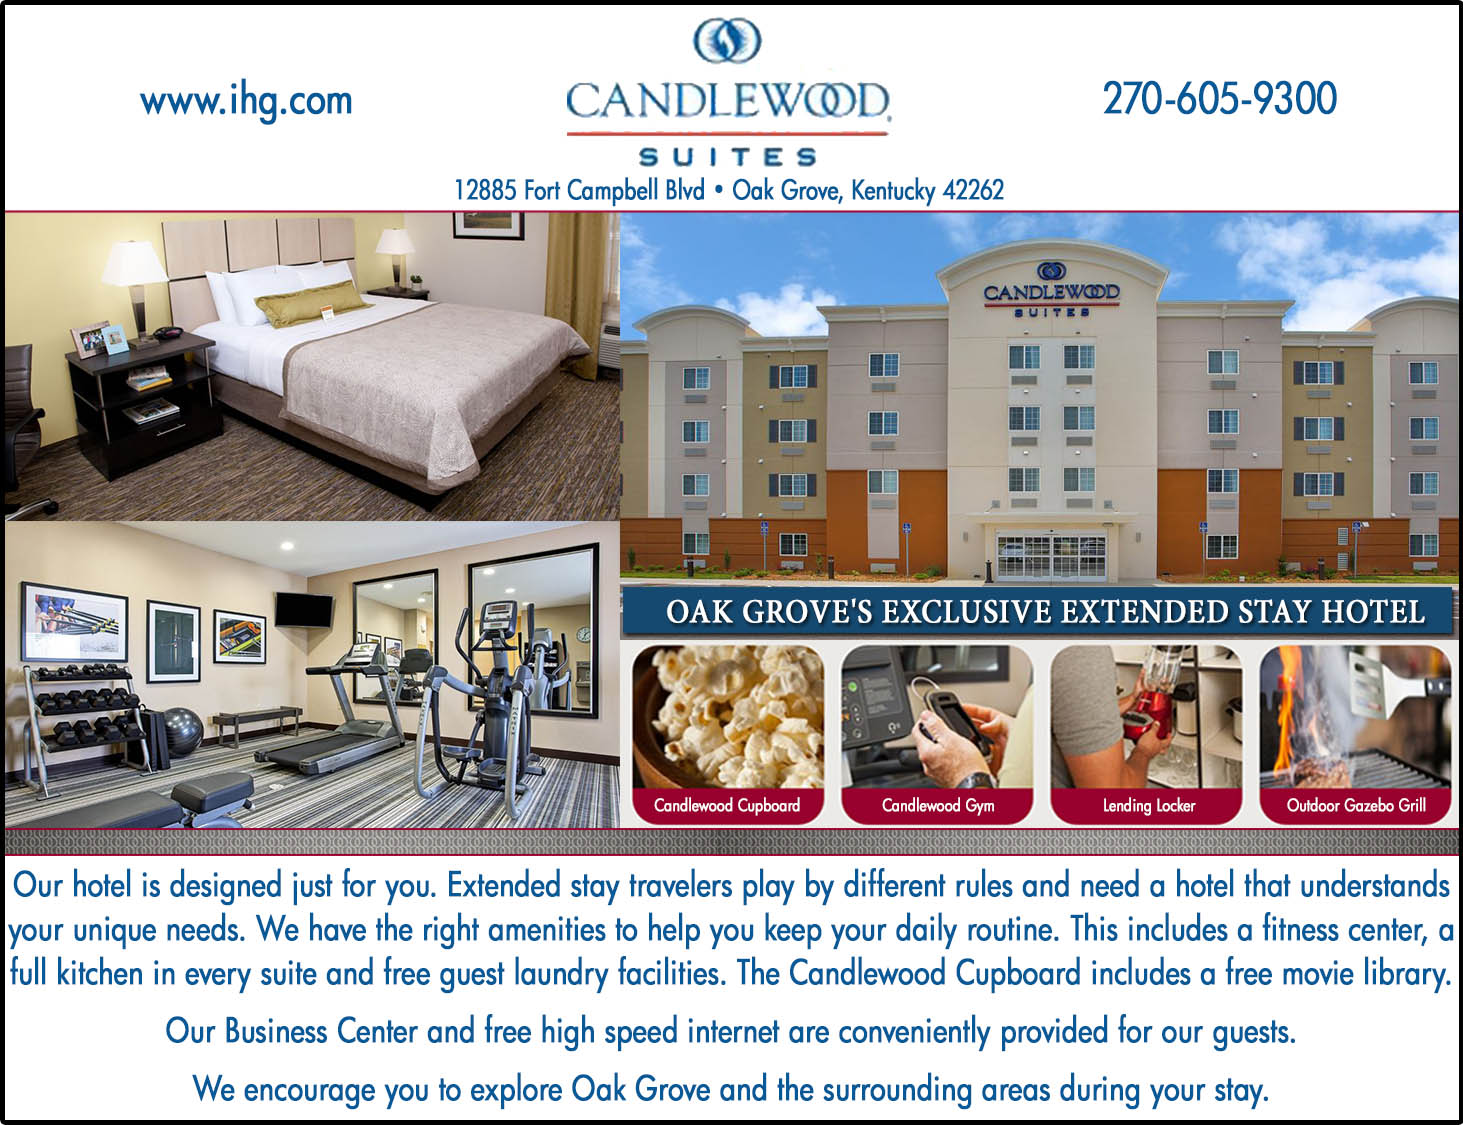 Candlewood Suites - Oak Grove